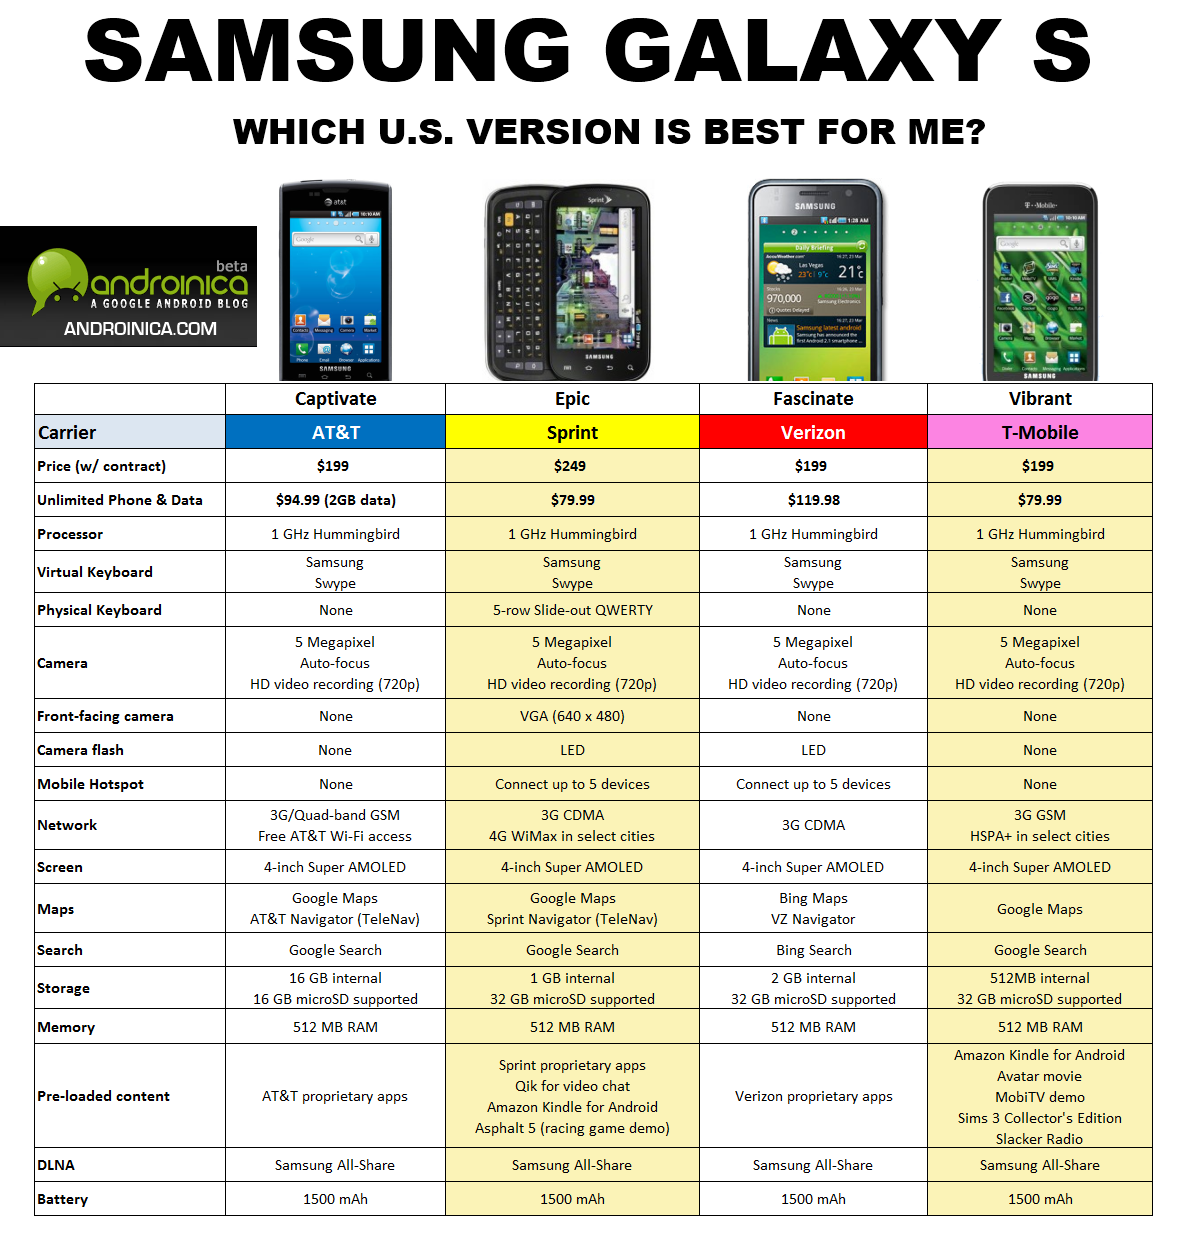 Awesome galaxy s comparison chart for u s carriers and versions